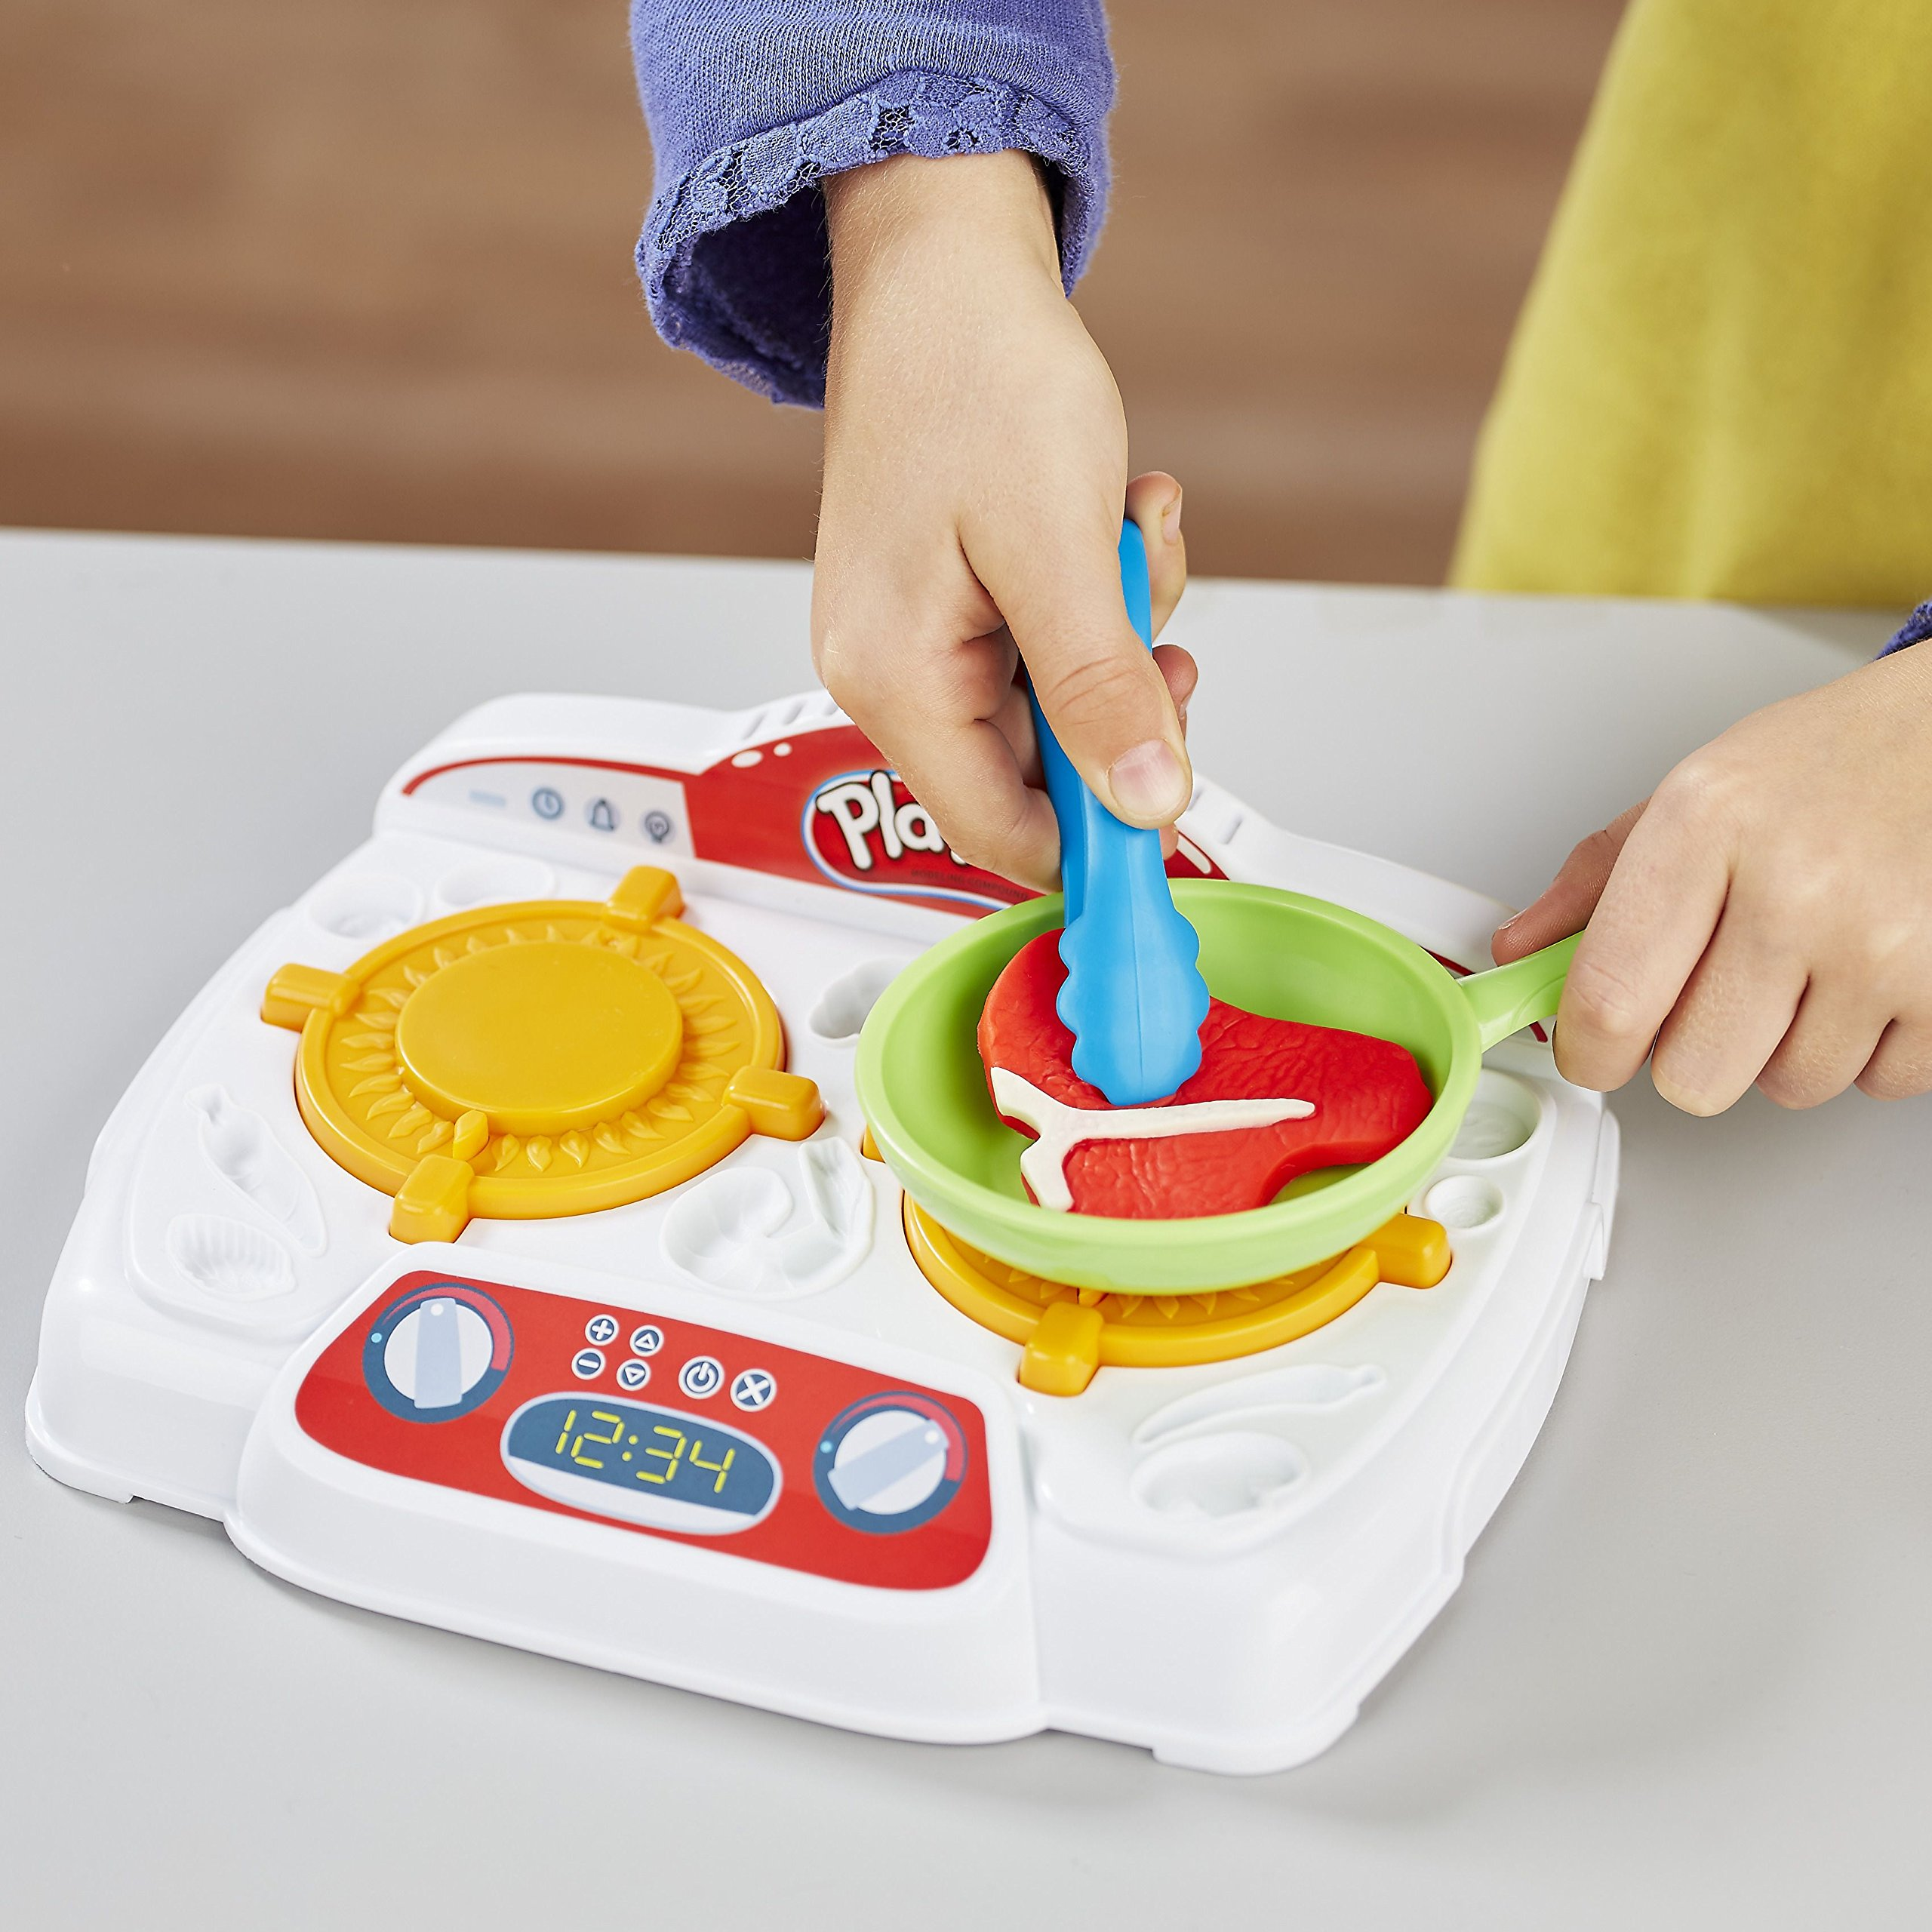 Play-Doh - B9014 - Kitchen Creations Sizzling Stovetop by Play-Doh (Image #3)